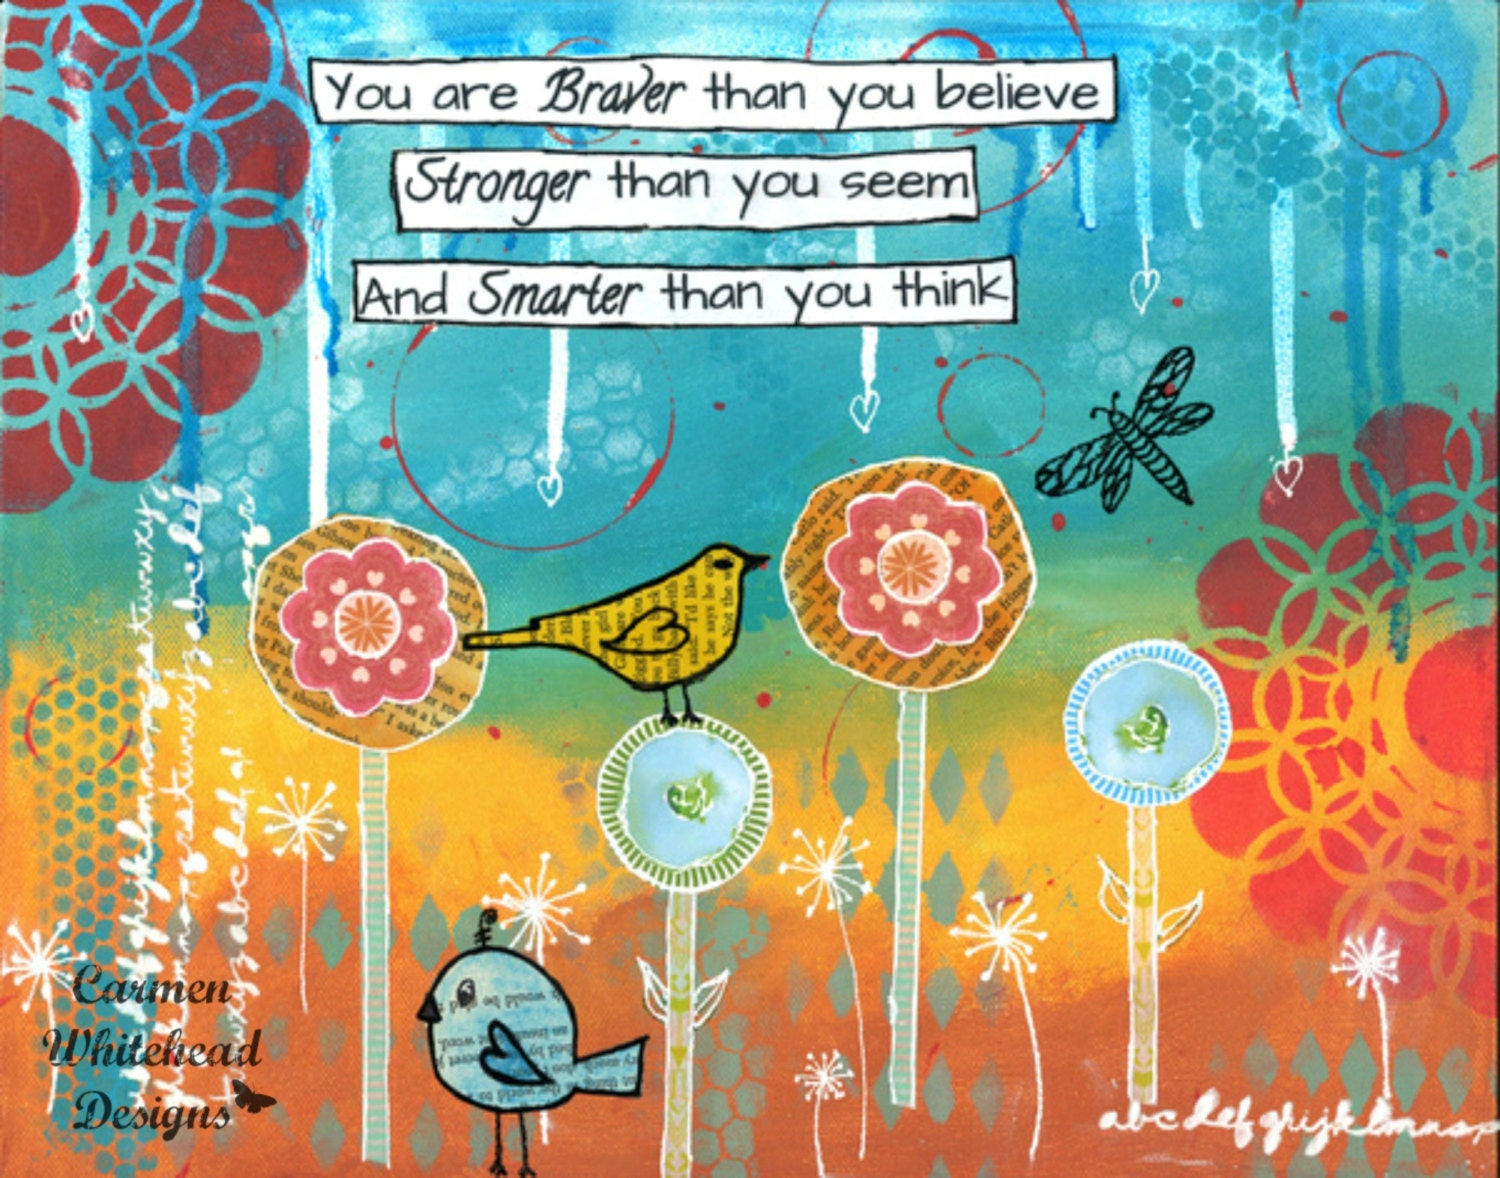 Braver Stronger Smarter Mixed Media Print By CarmenWDesigns